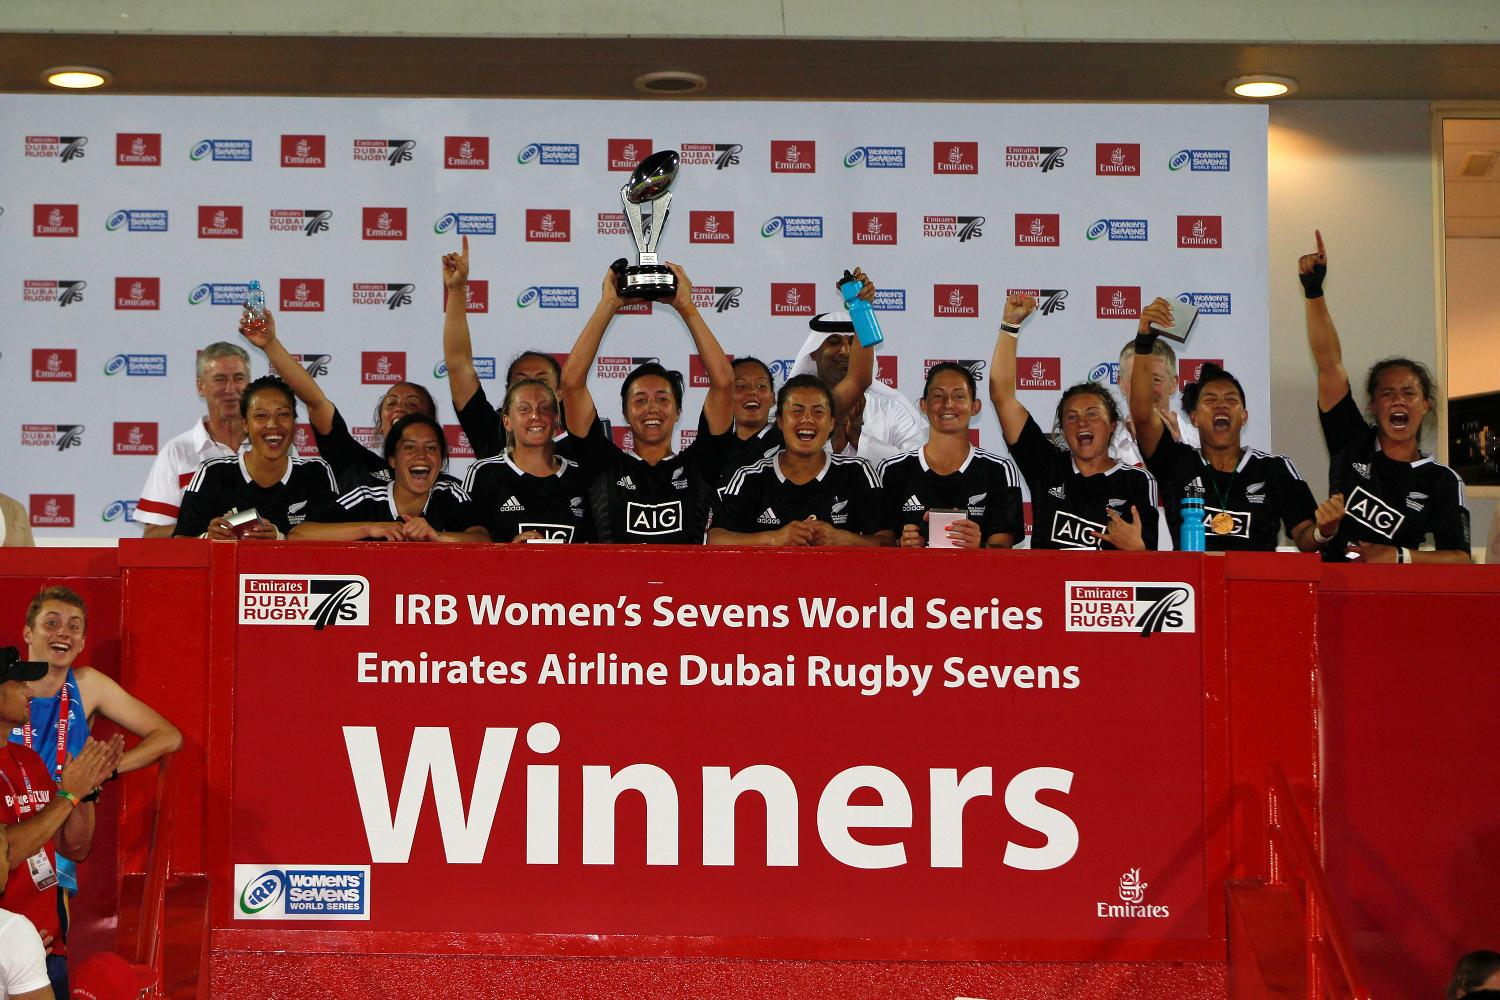 Women's World Series 2014/2015